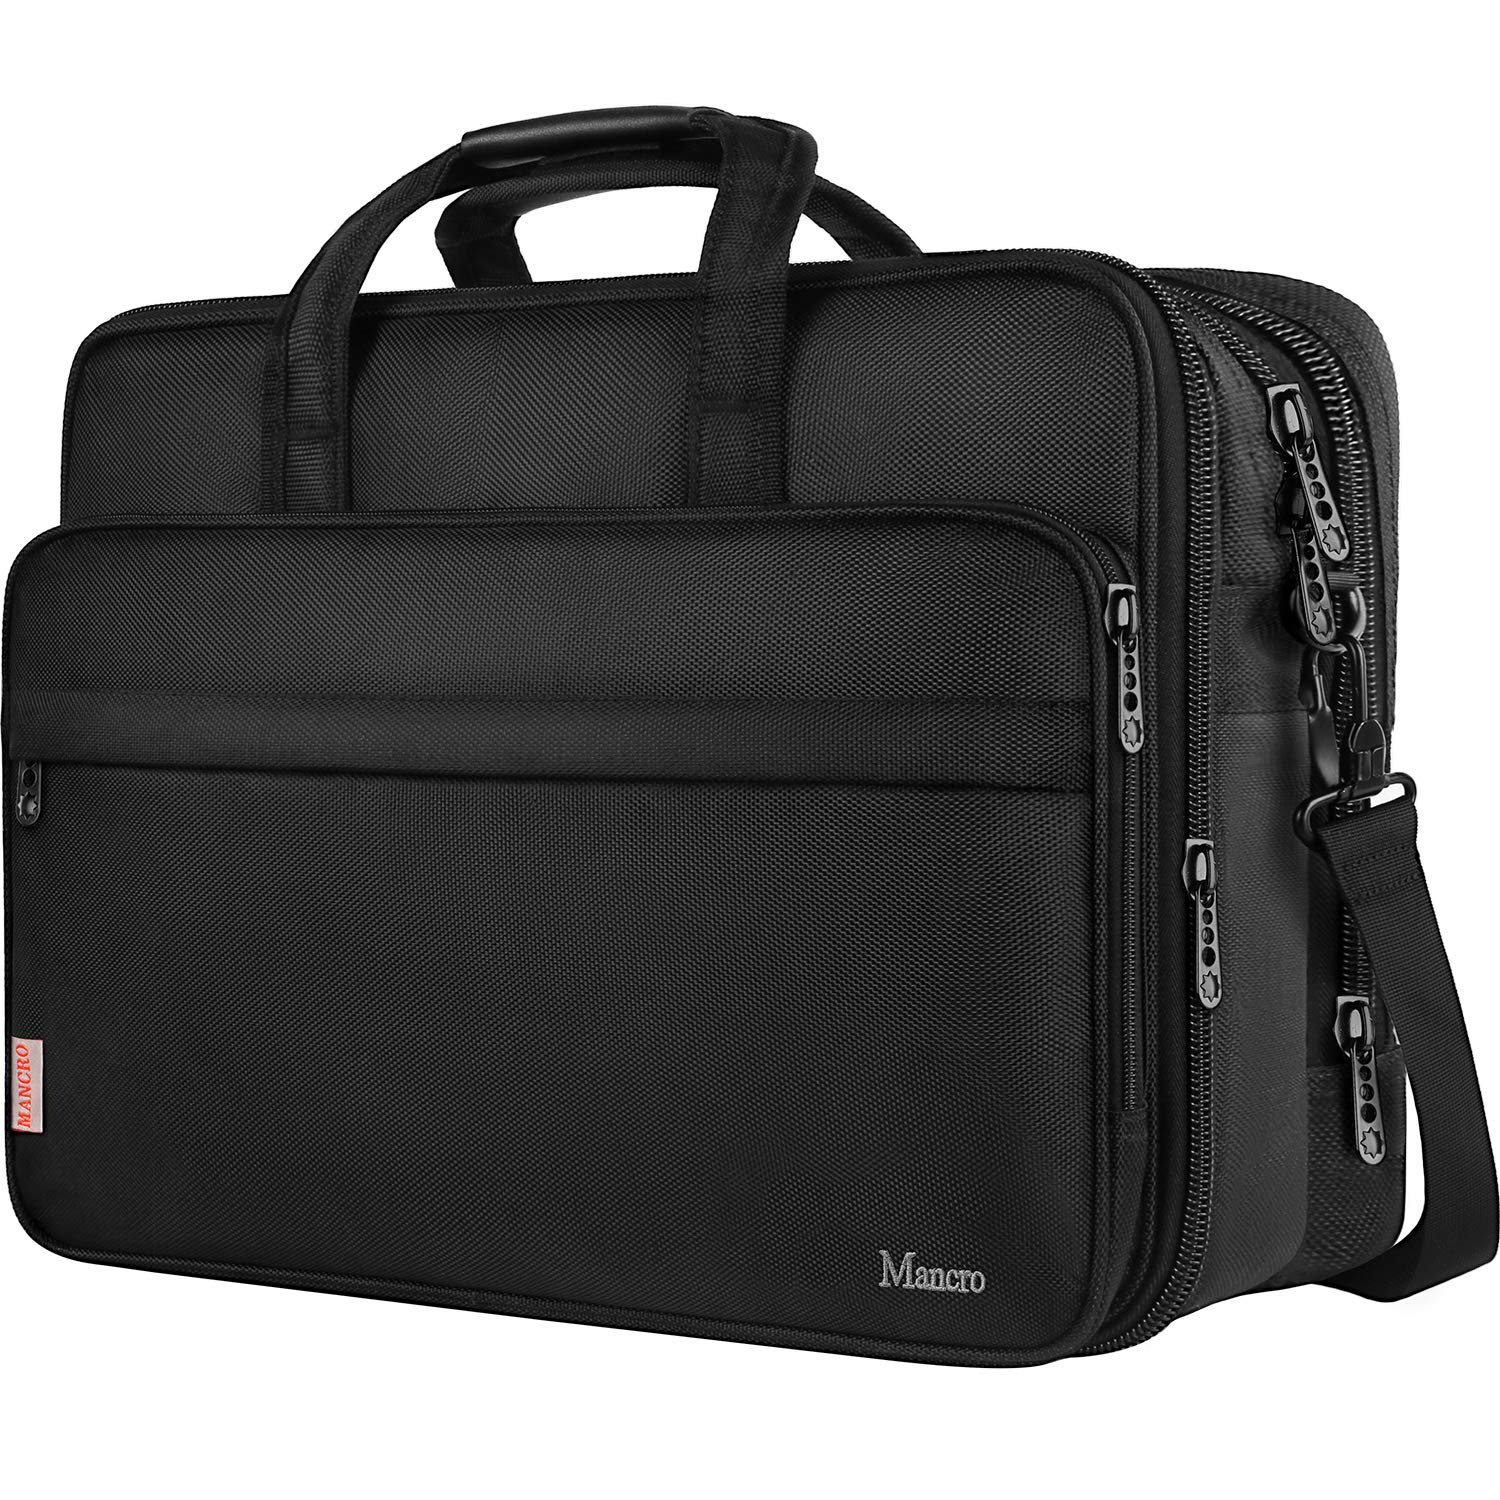 17 inch Laptop Bag, Large Business Briefcase for Men Women, Travel Laptop Case Shoulder Bag, Waterproof Carrying Case Fits 15.6 17 inch Laptop, Expandable Computer Bag for Notebook, Ultrabook Adela Shop 1083